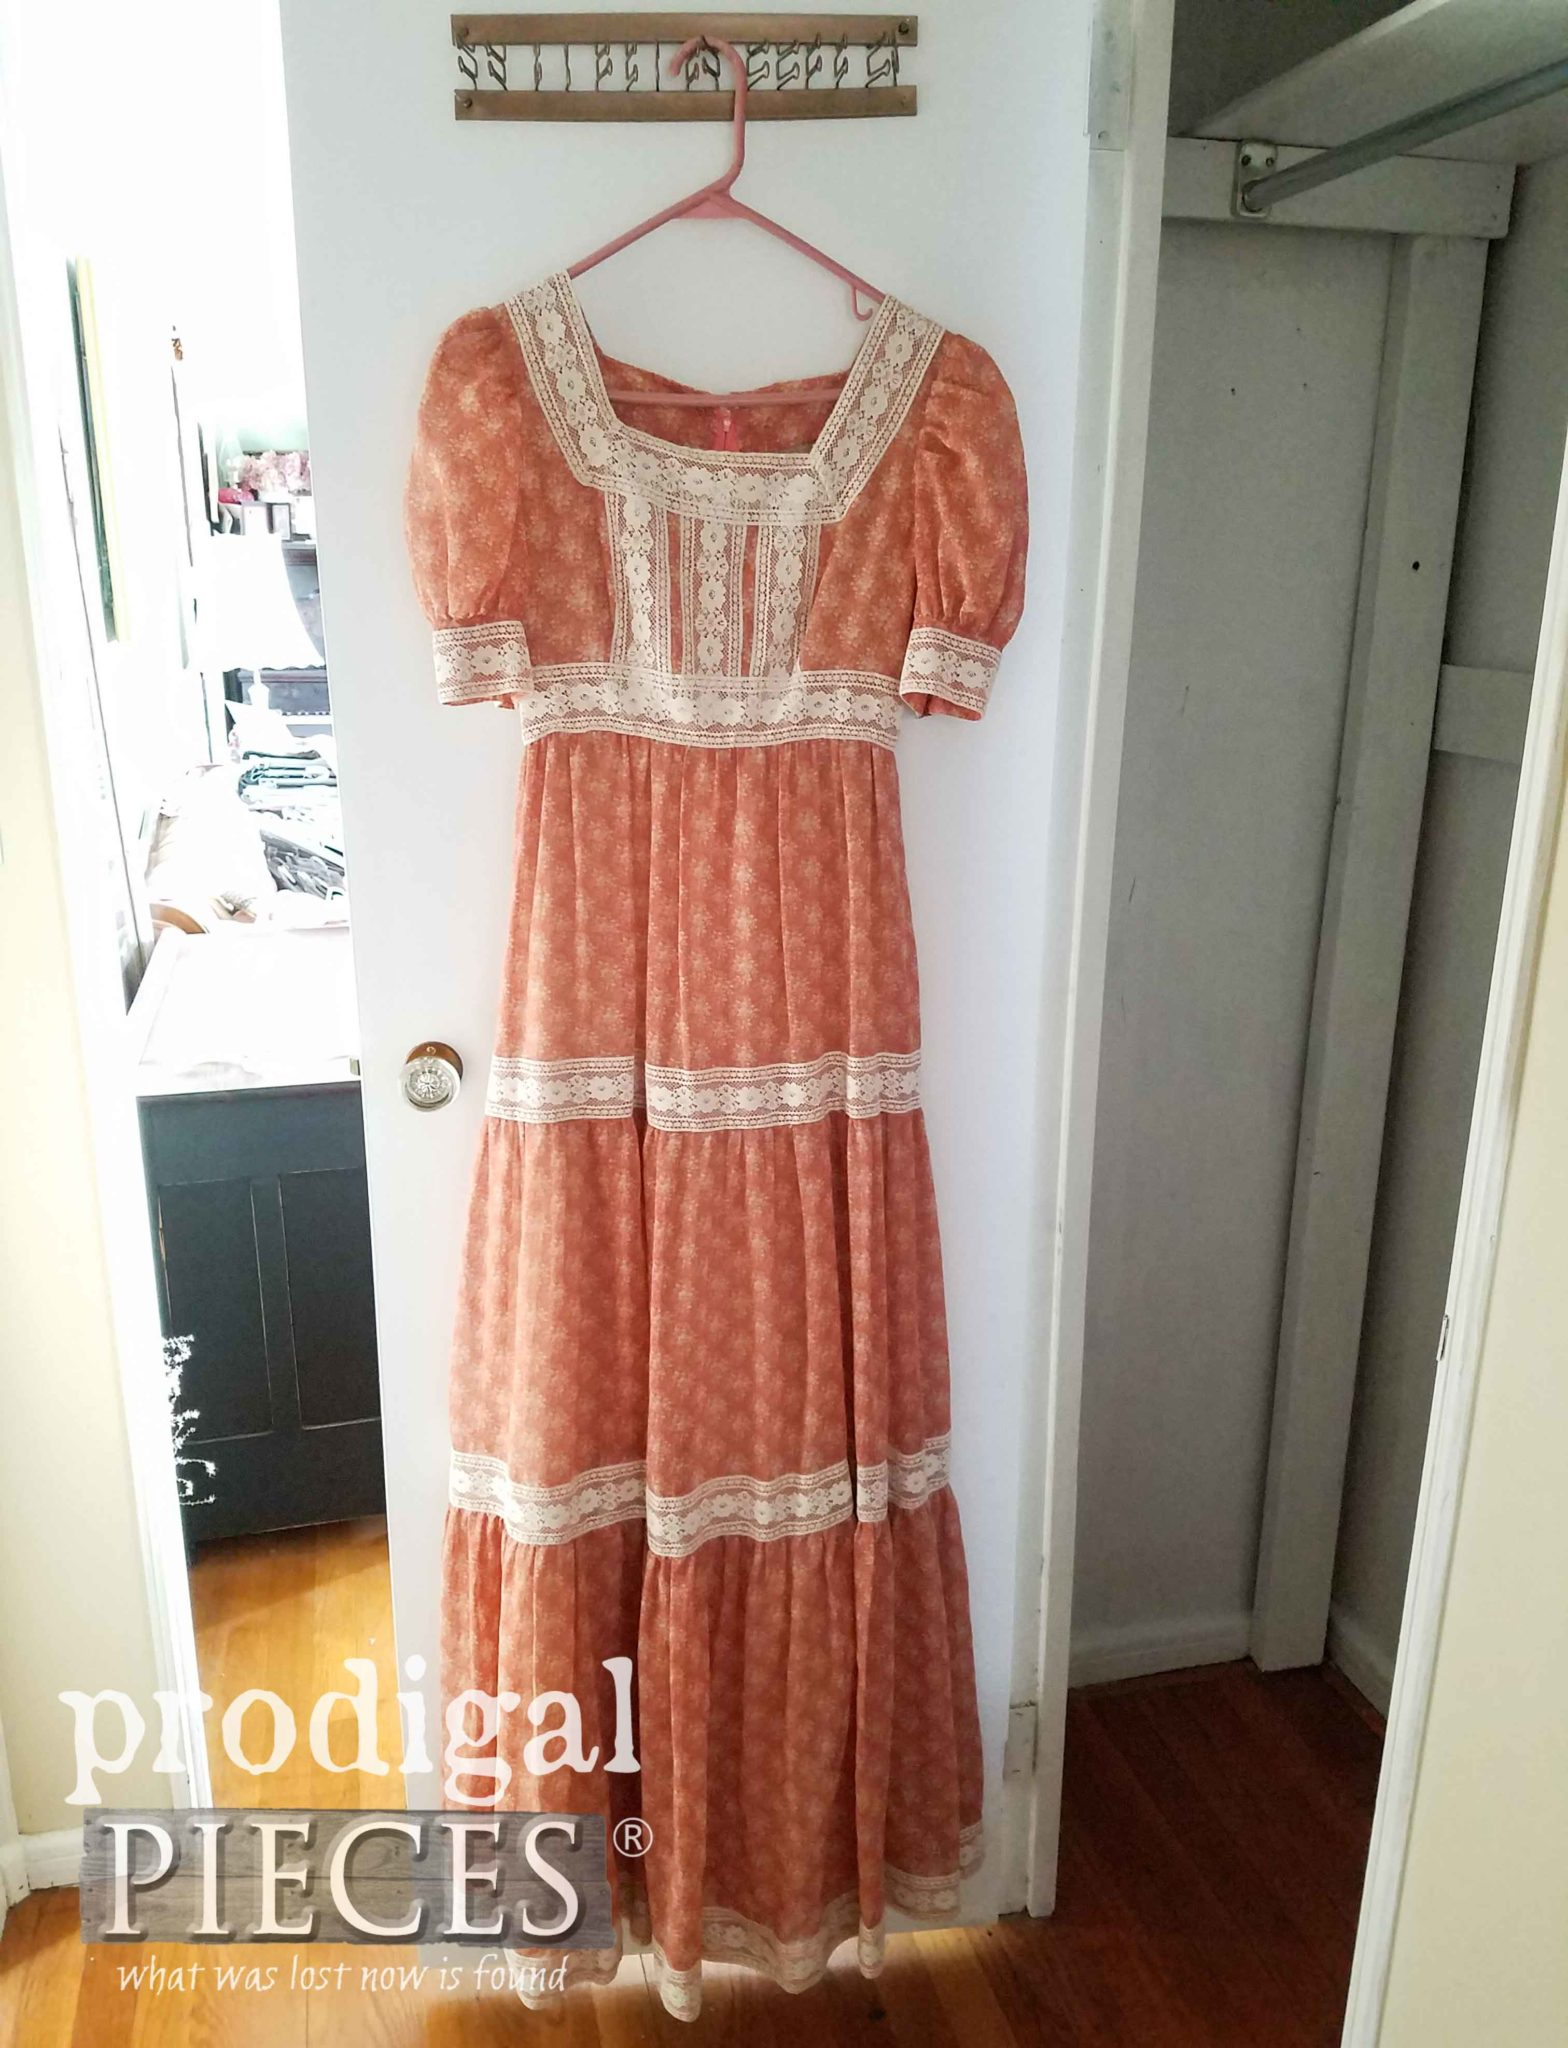 Thrifted Handmade Prairie Dress | Prodigal Pieces | prodigalpieces.com